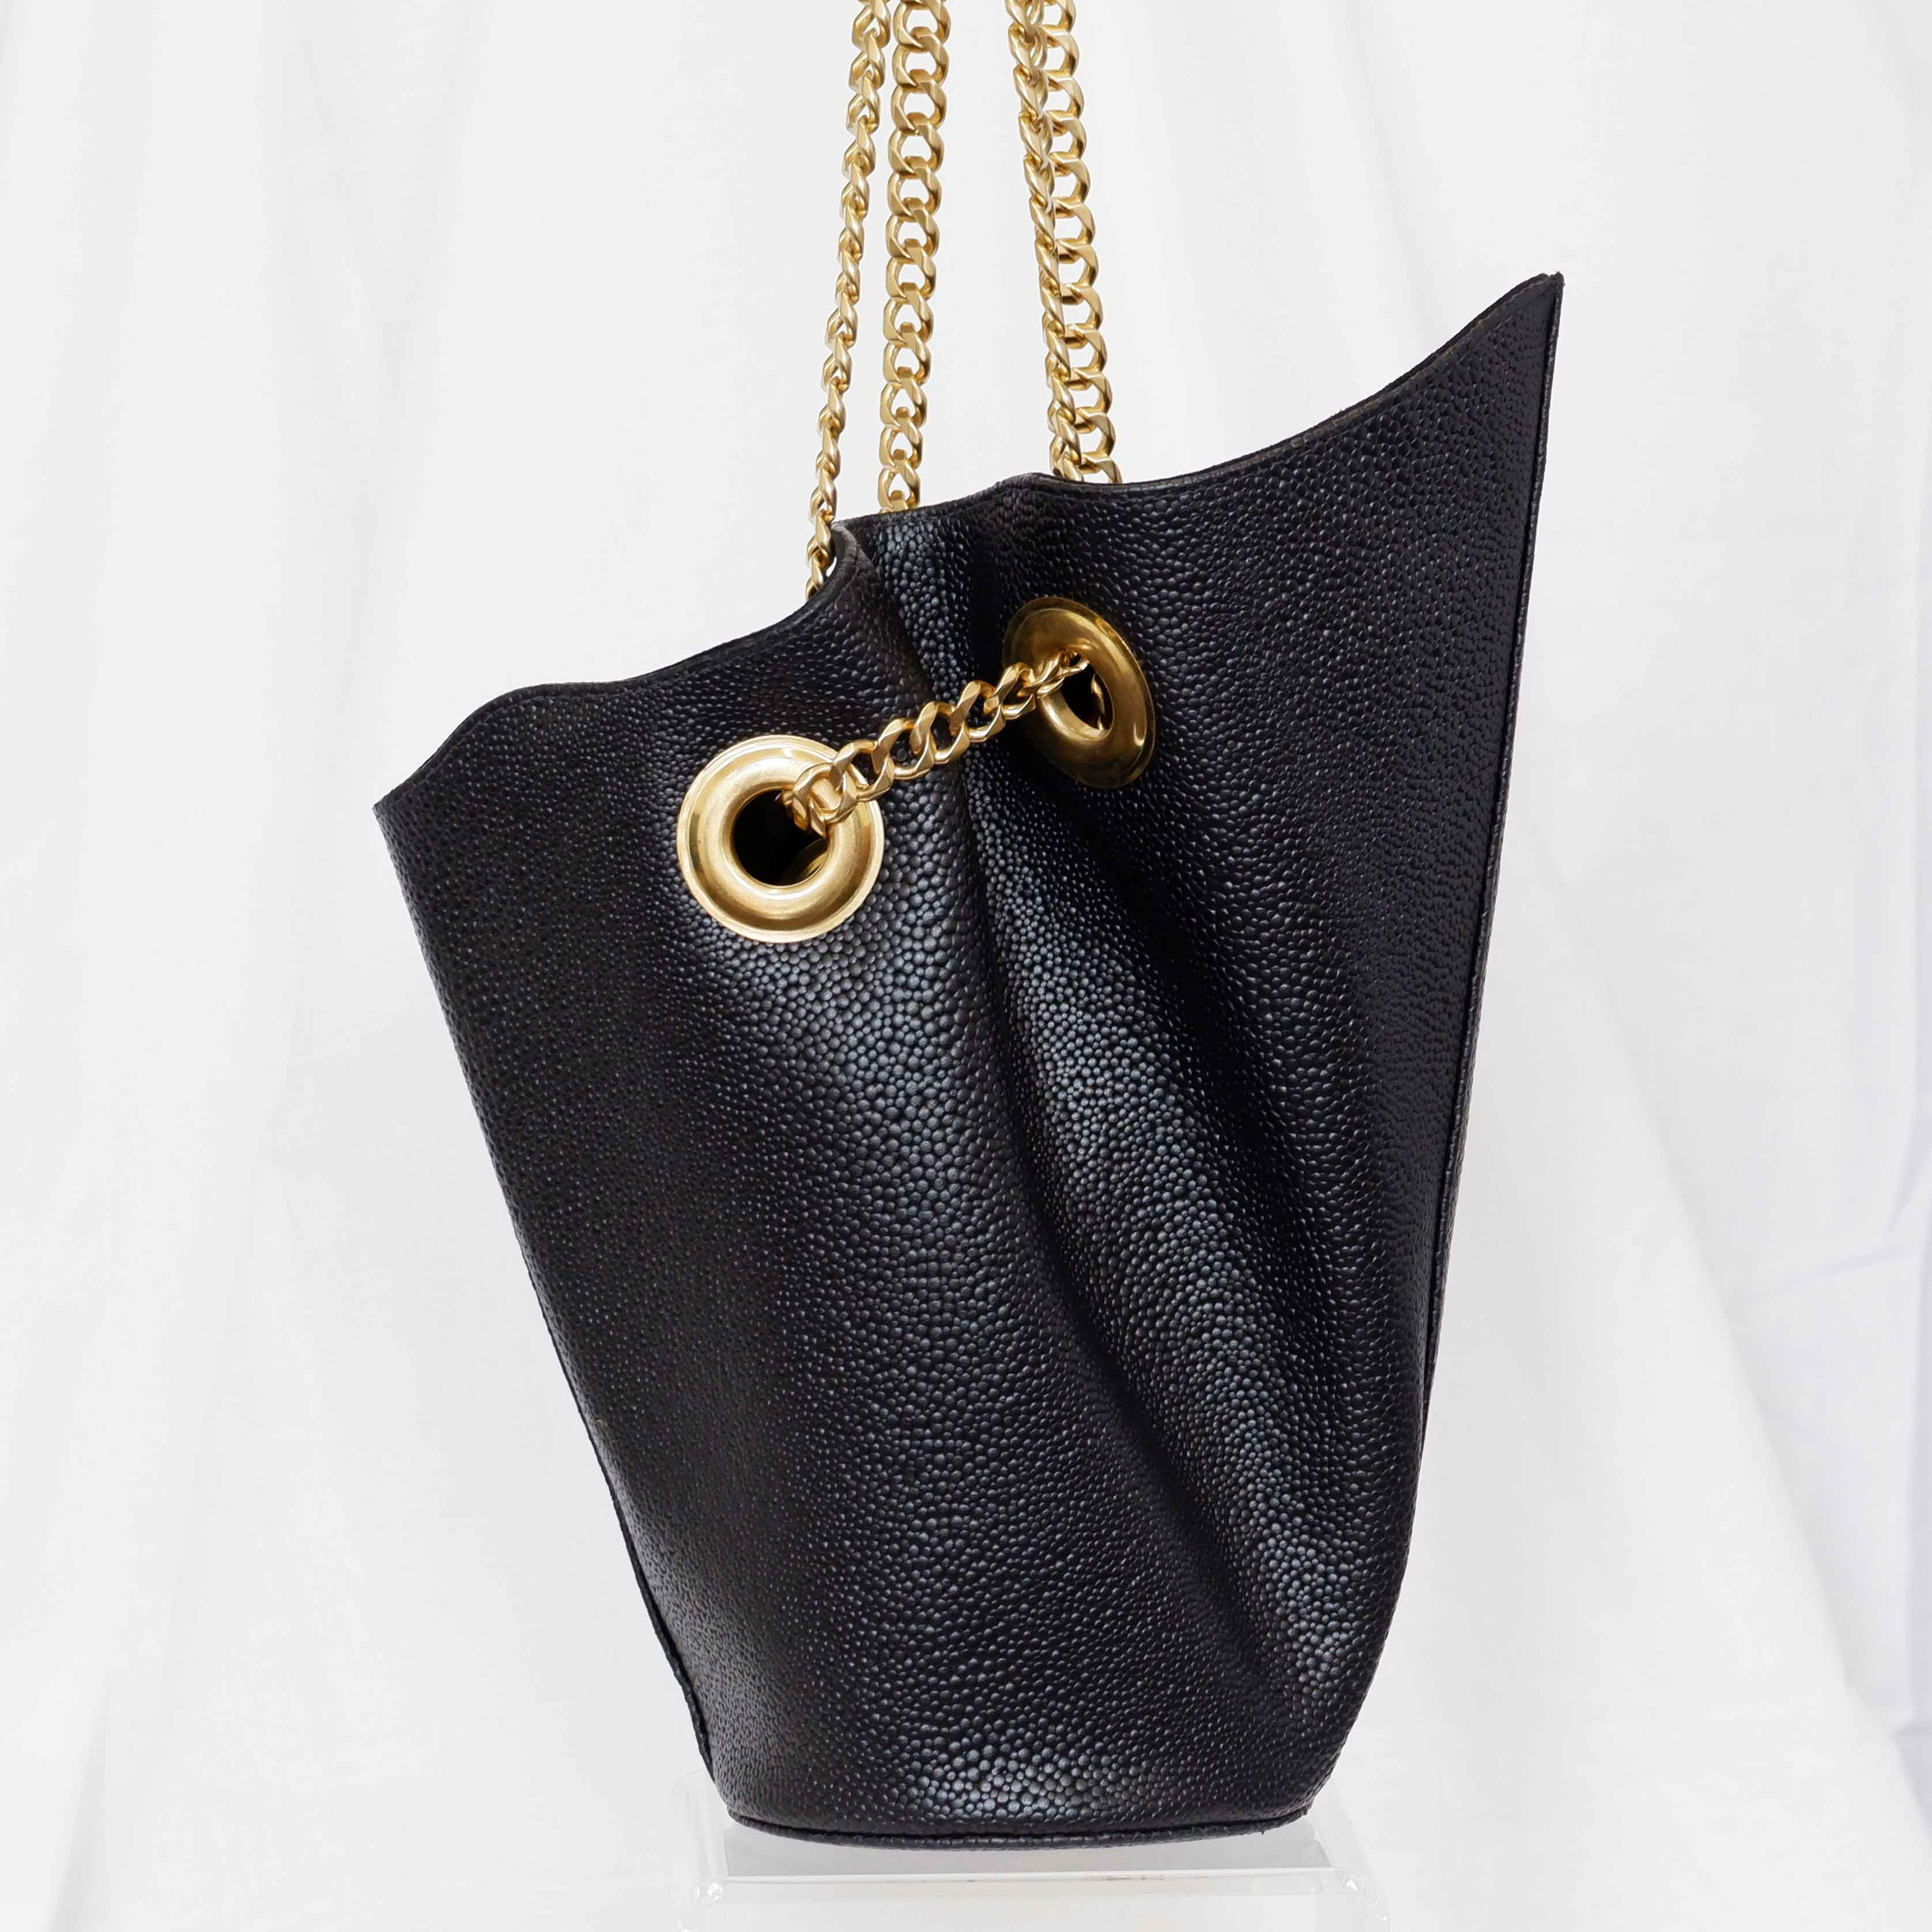 Susan Bucket Bag in Black Pebble, Small